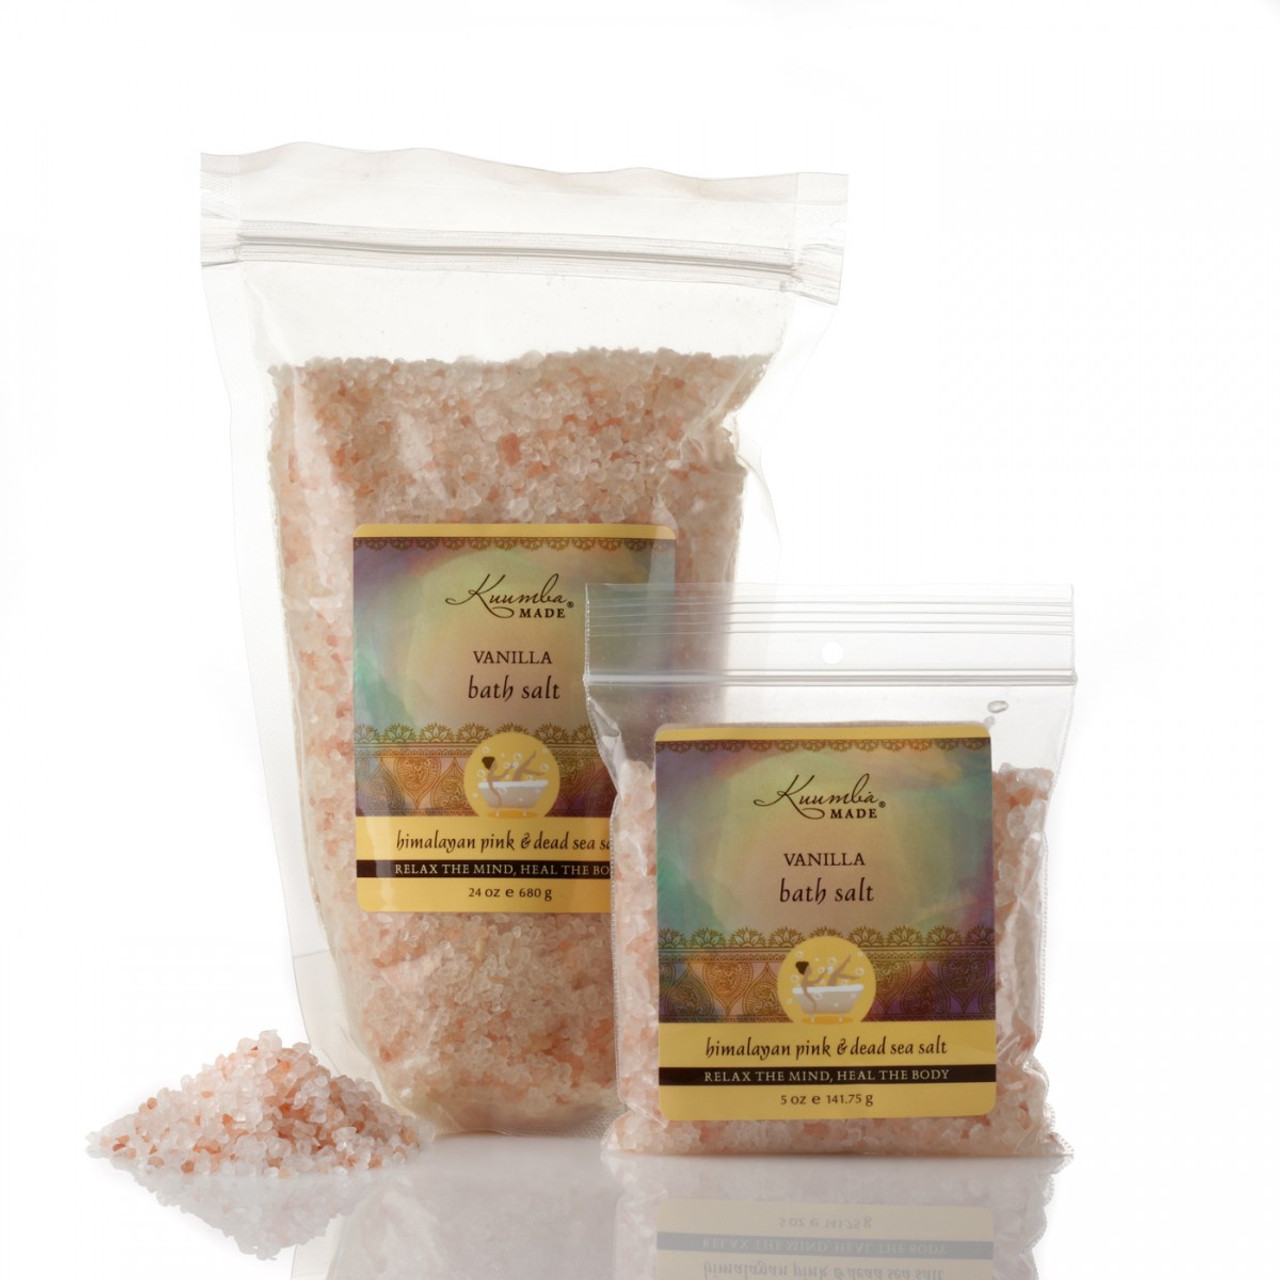 Kuumba Made Vanilla Bath Salt